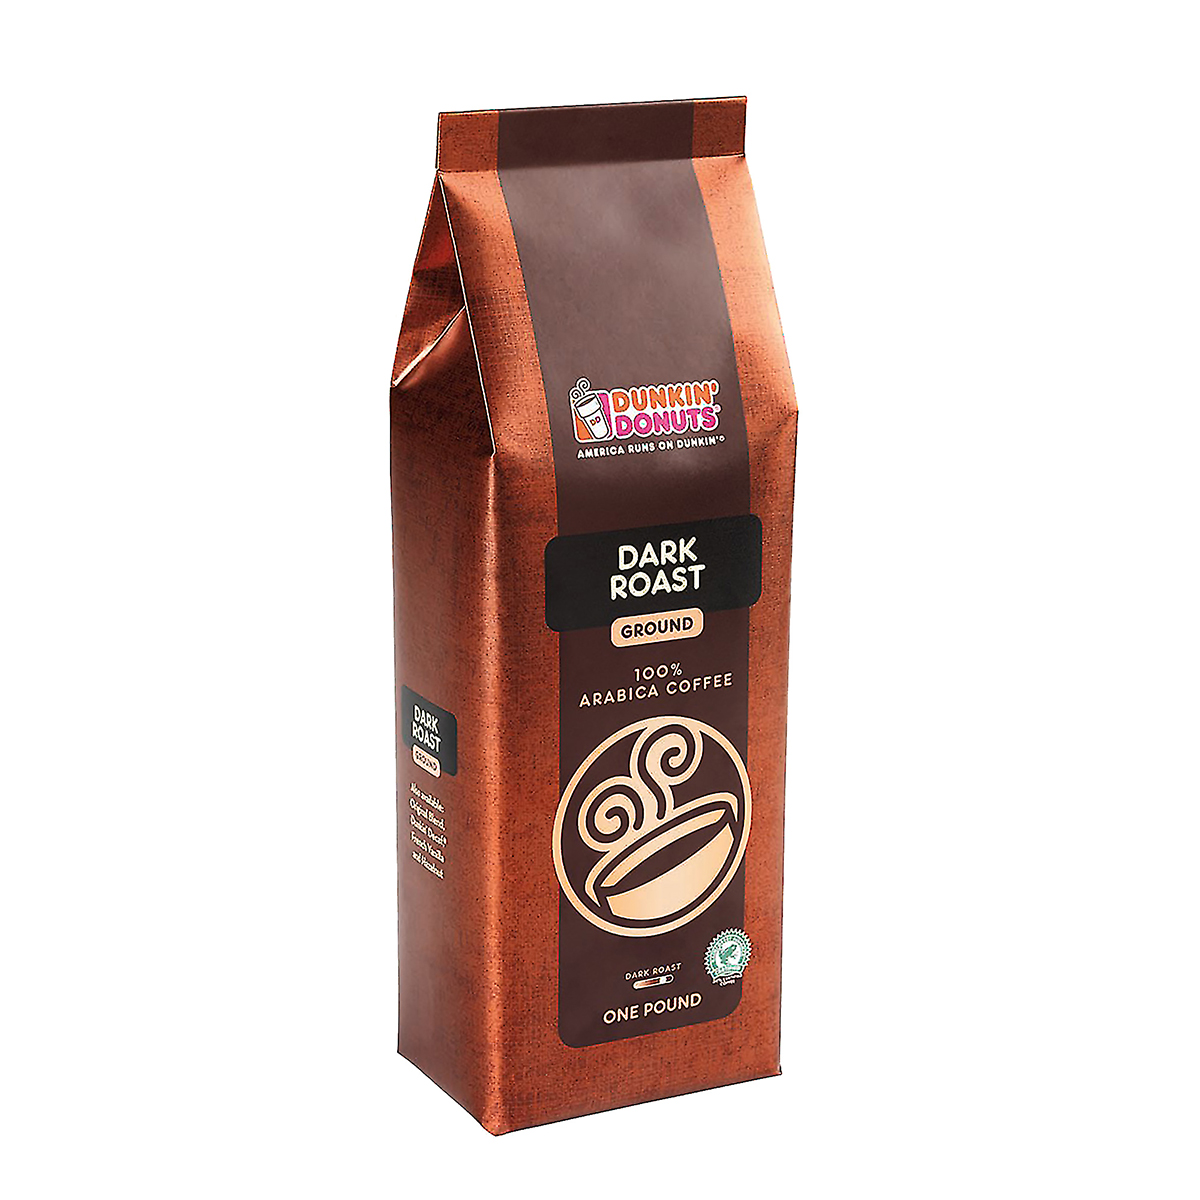 Dark Roast Ground Coffee, 1 lb.